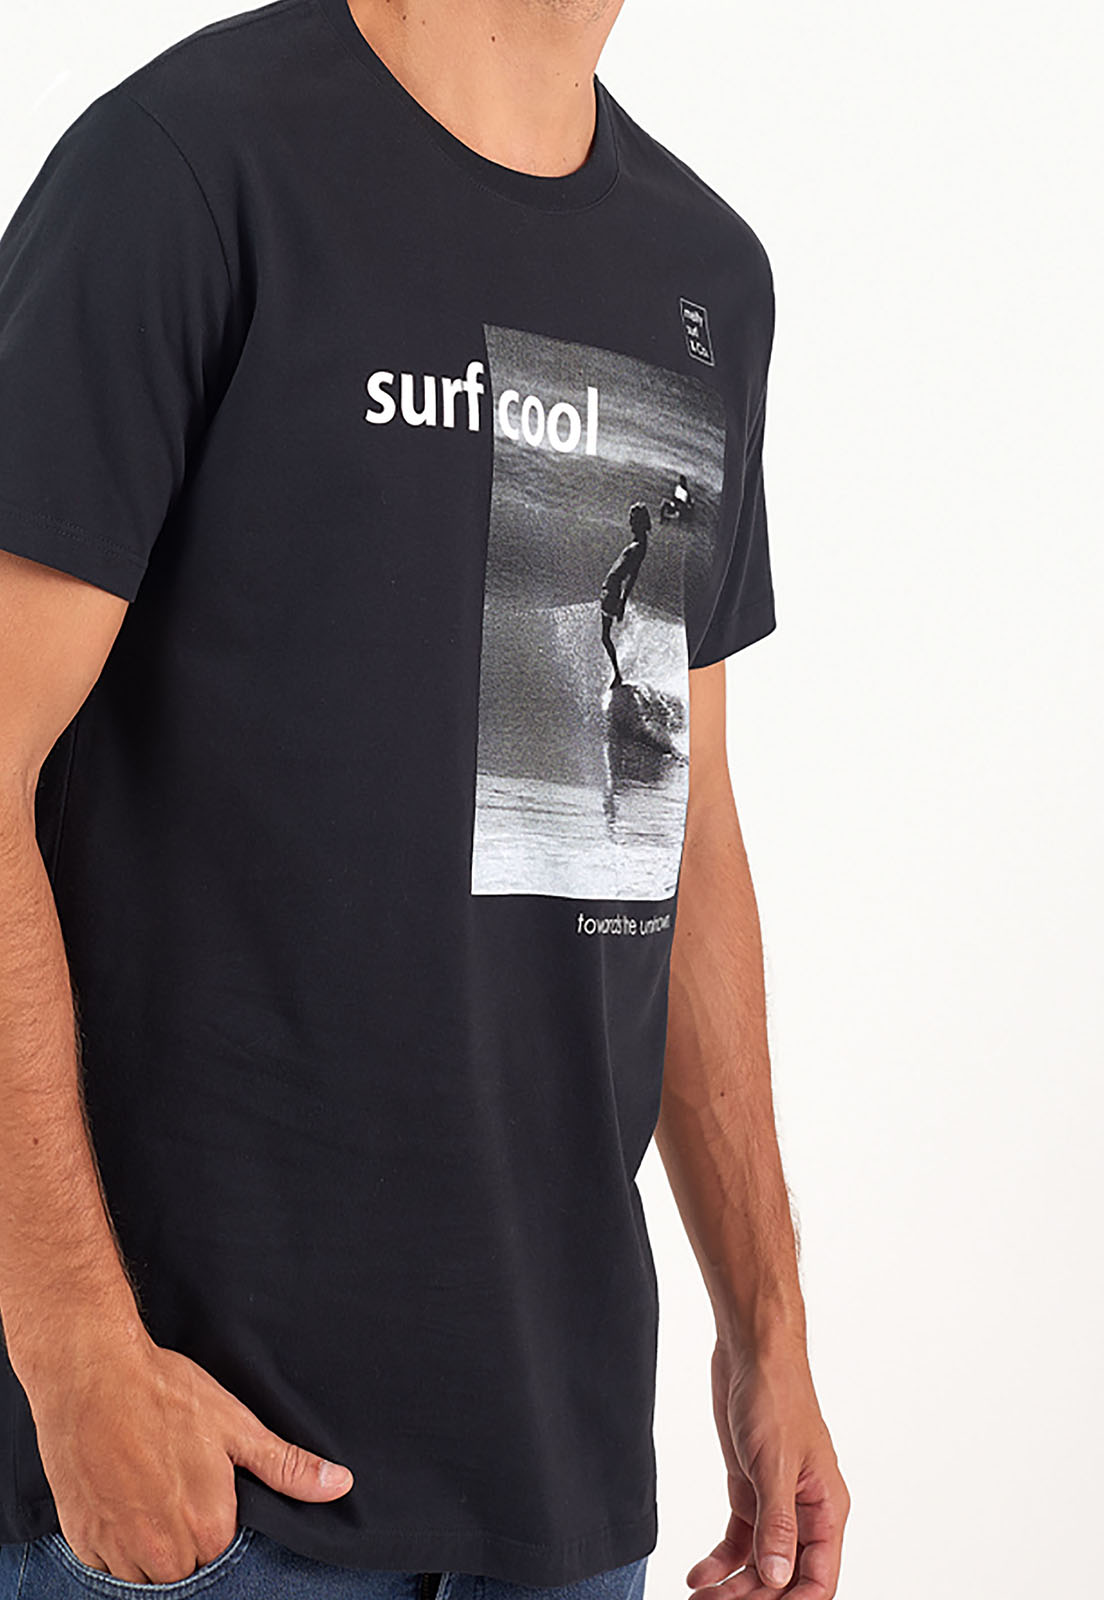 T-Shirt Surf Cool Preto melty  - melty surf & Co.